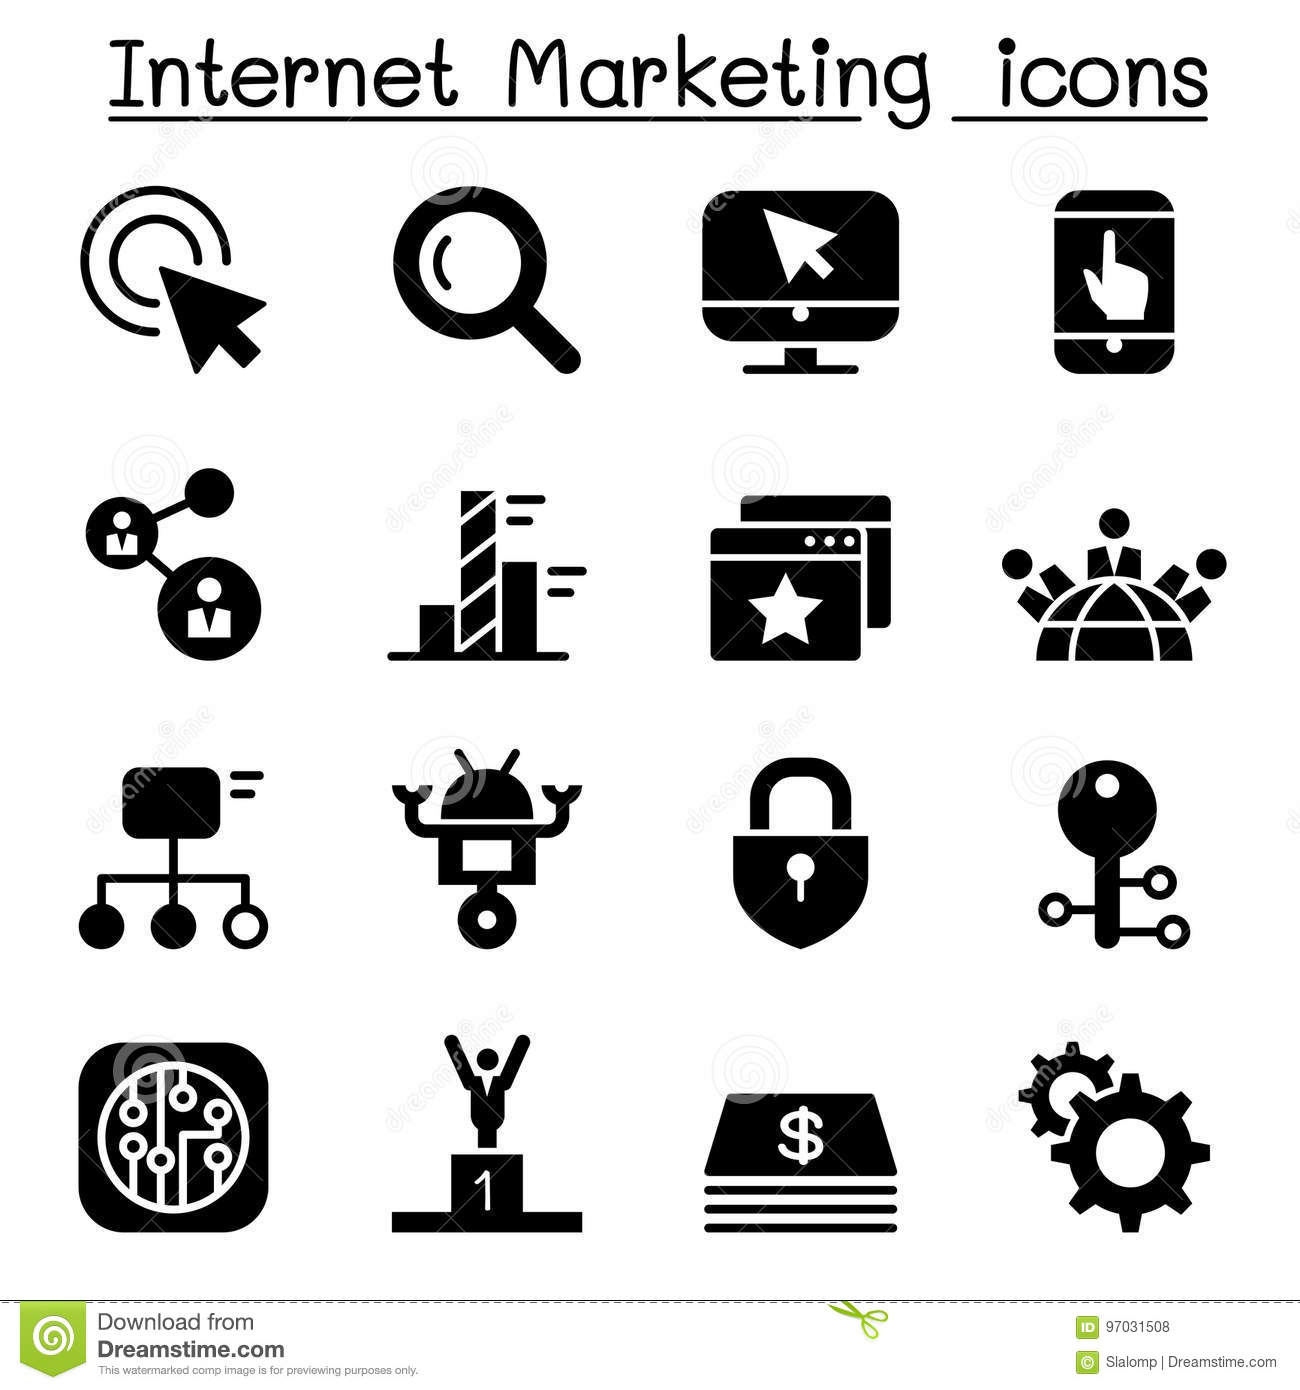 Internet Marketing & Search Engine Optimization Icon Set